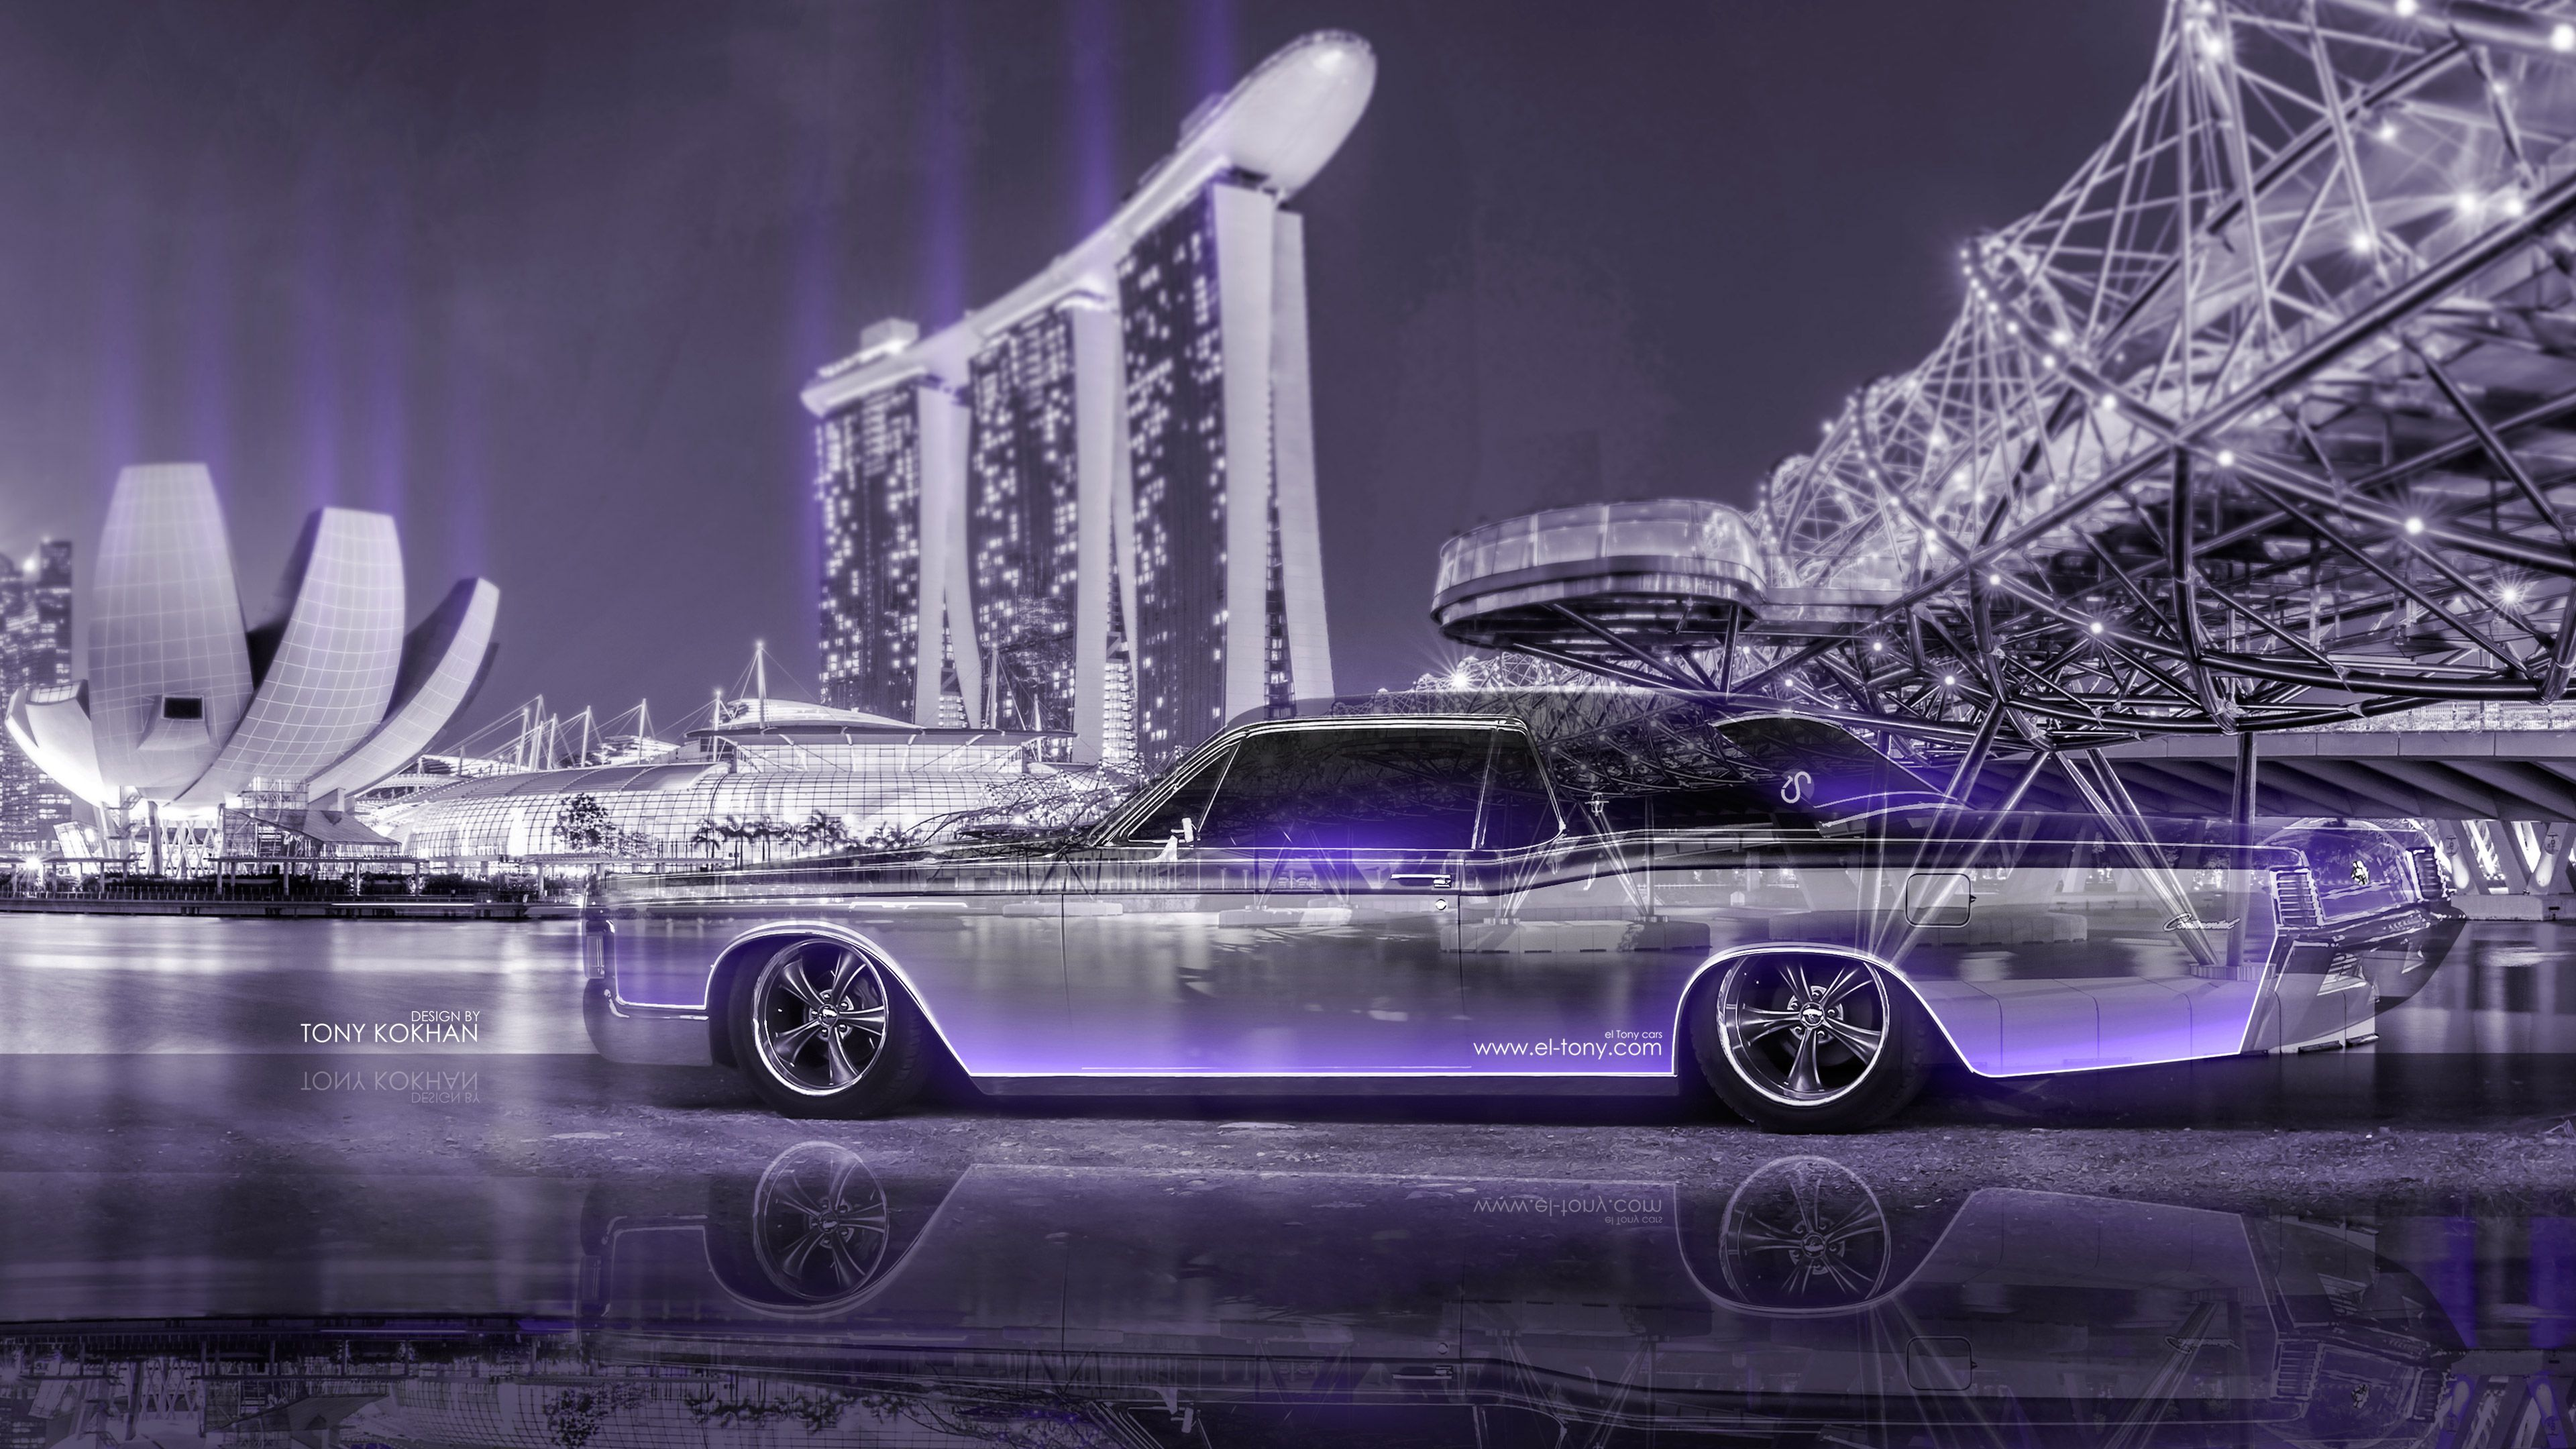 Lincoln Continental Crystal City Night Neon Car 2015   Honda Civic JDM  Tuning Super Anime Girl Energy Night City Fog Smoke Car Eldorado Coupe  Retro Crystal ...